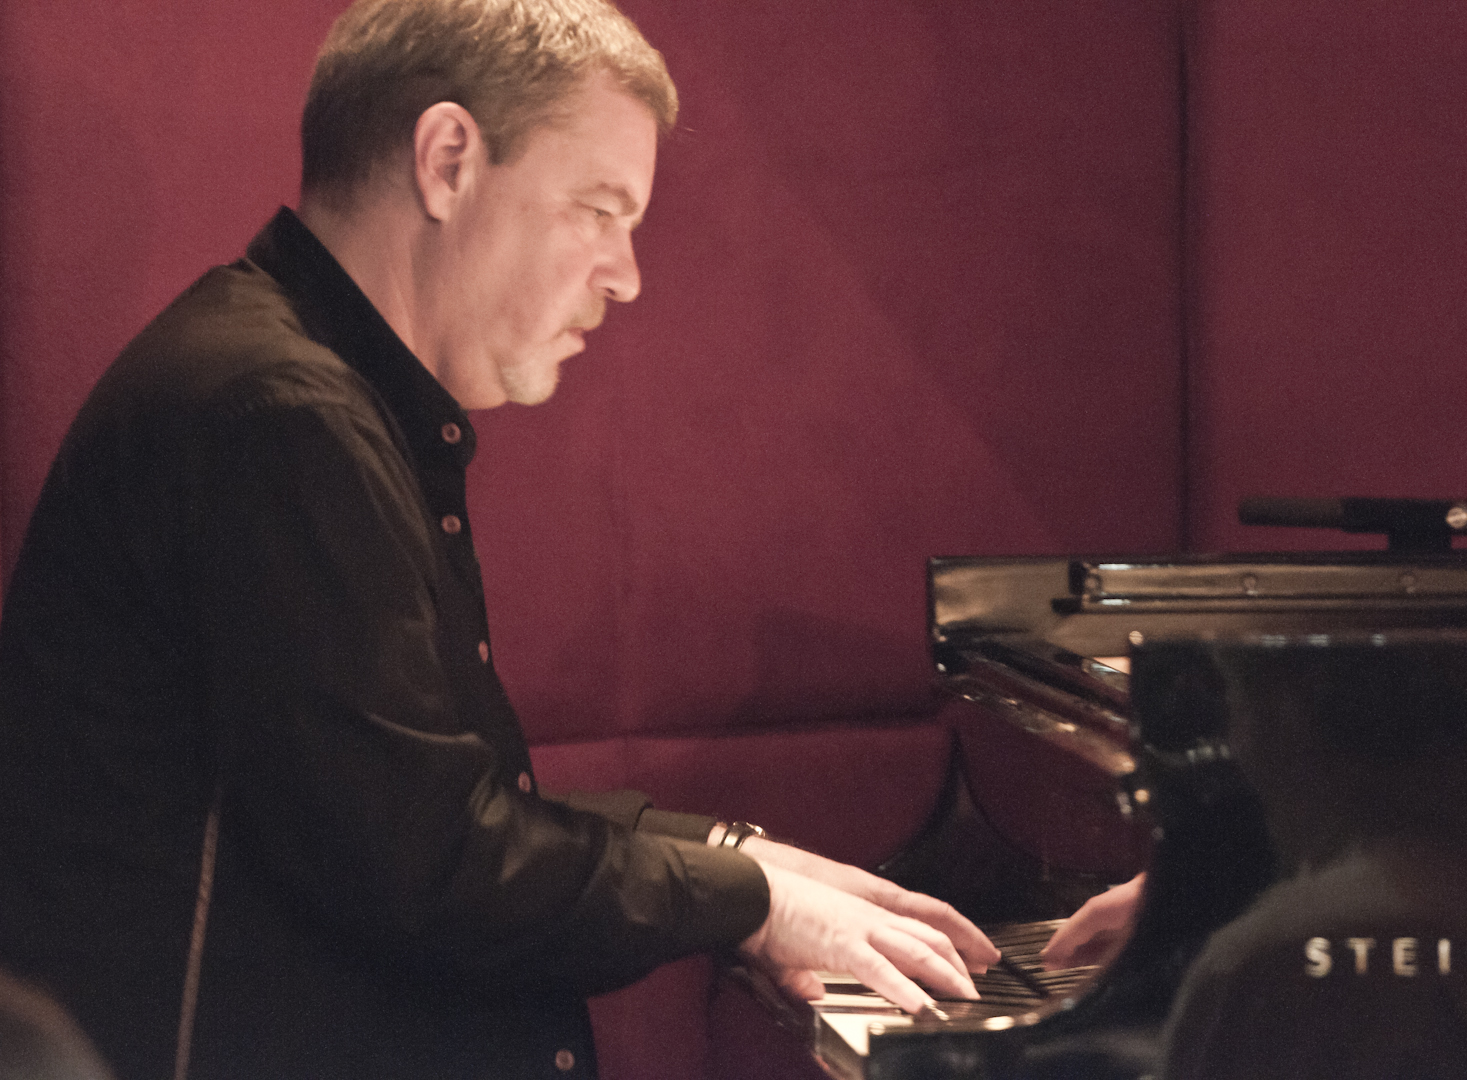 Frank Kimbrough with the Maria Schneider Orchestra at the Jazz Standard